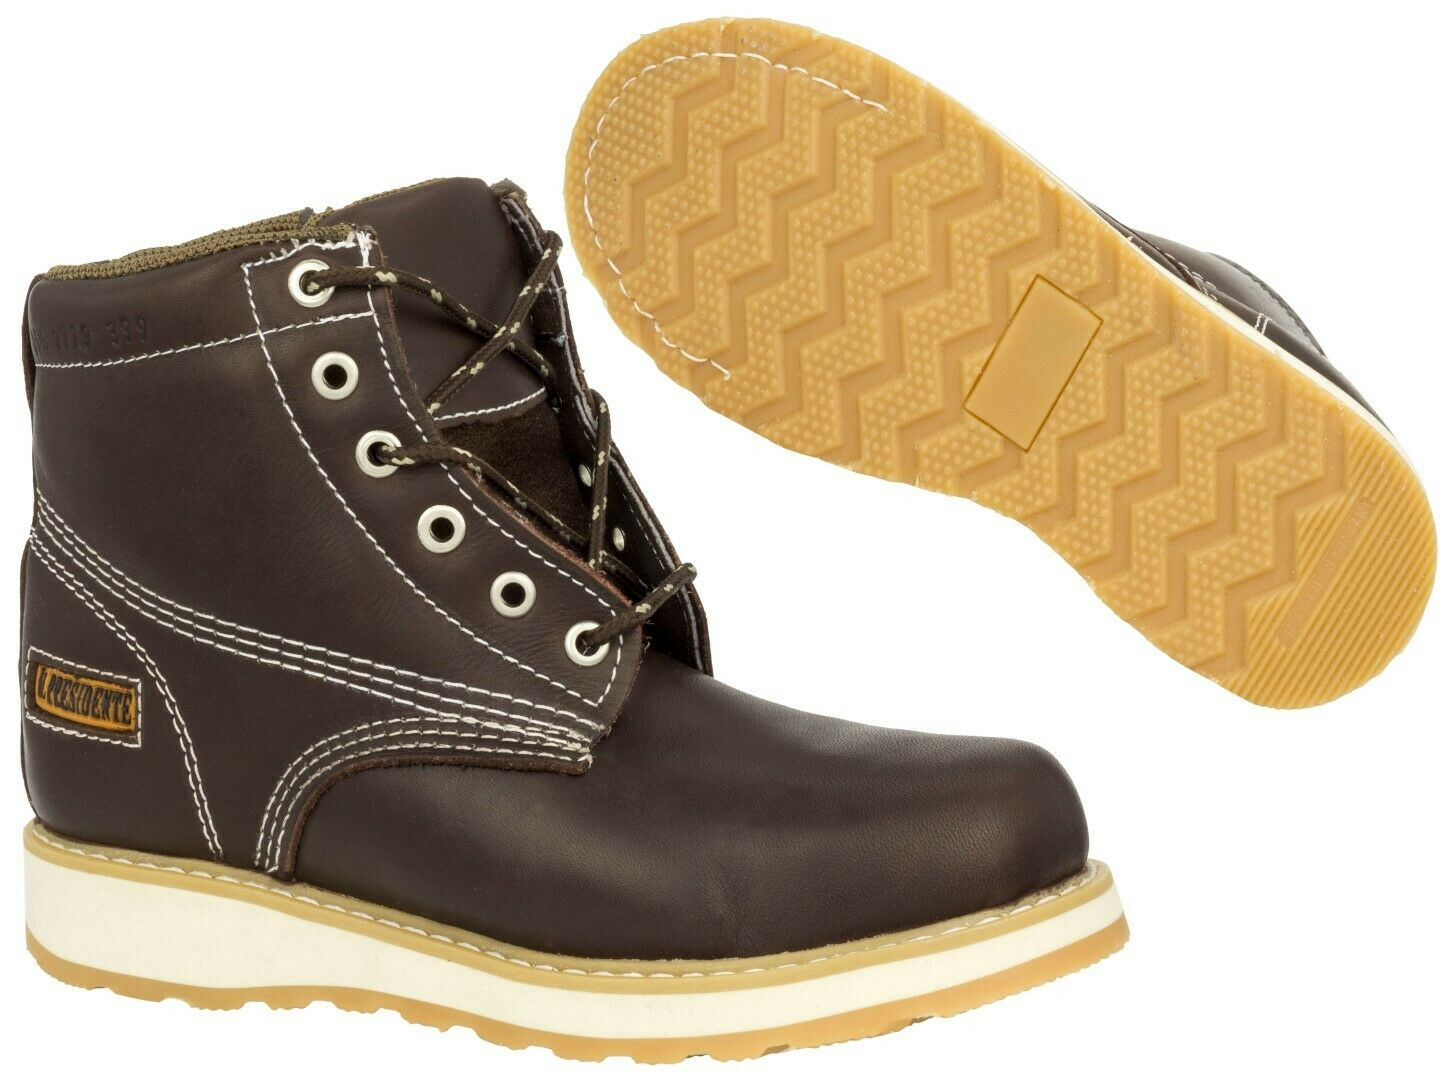 Mens Leather Work Boots Lace Up Zipper Oil Resistant Rubber Soles Brown